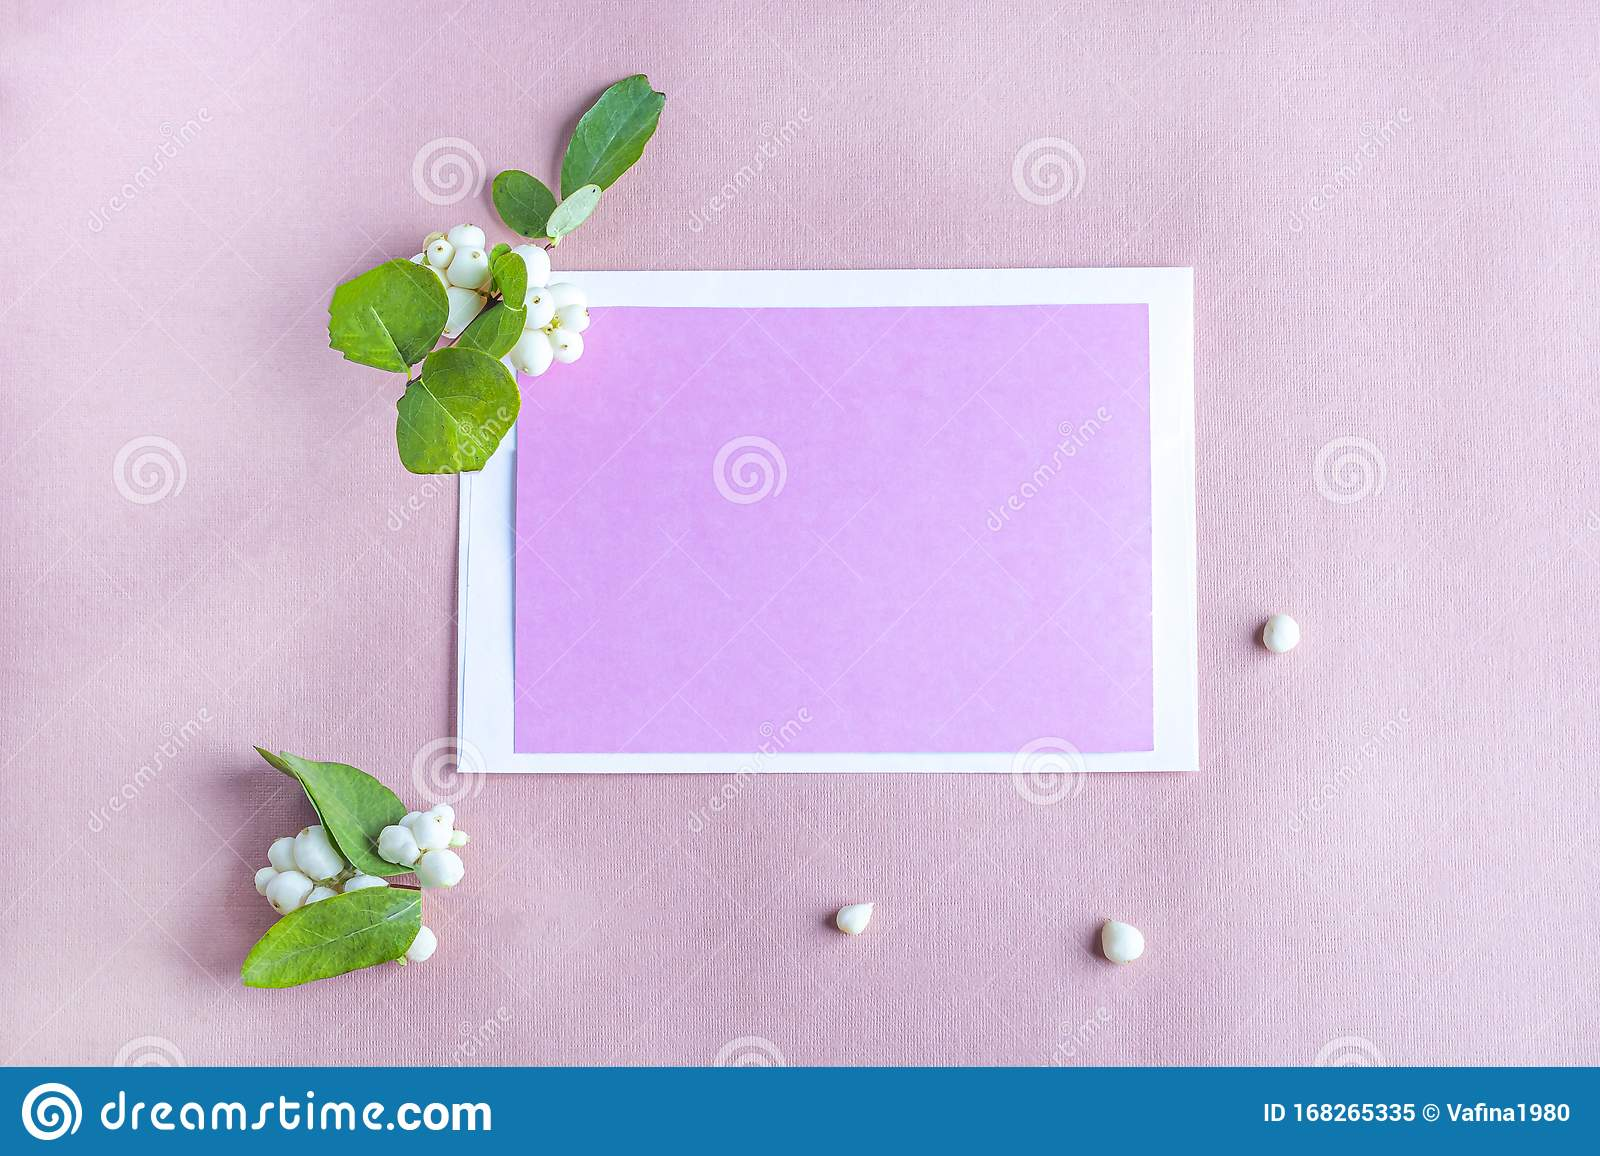 https www dreamstime com invitation card mockup template blank greeting card envelope to wedding birthday other events paper pink invitation image168265335